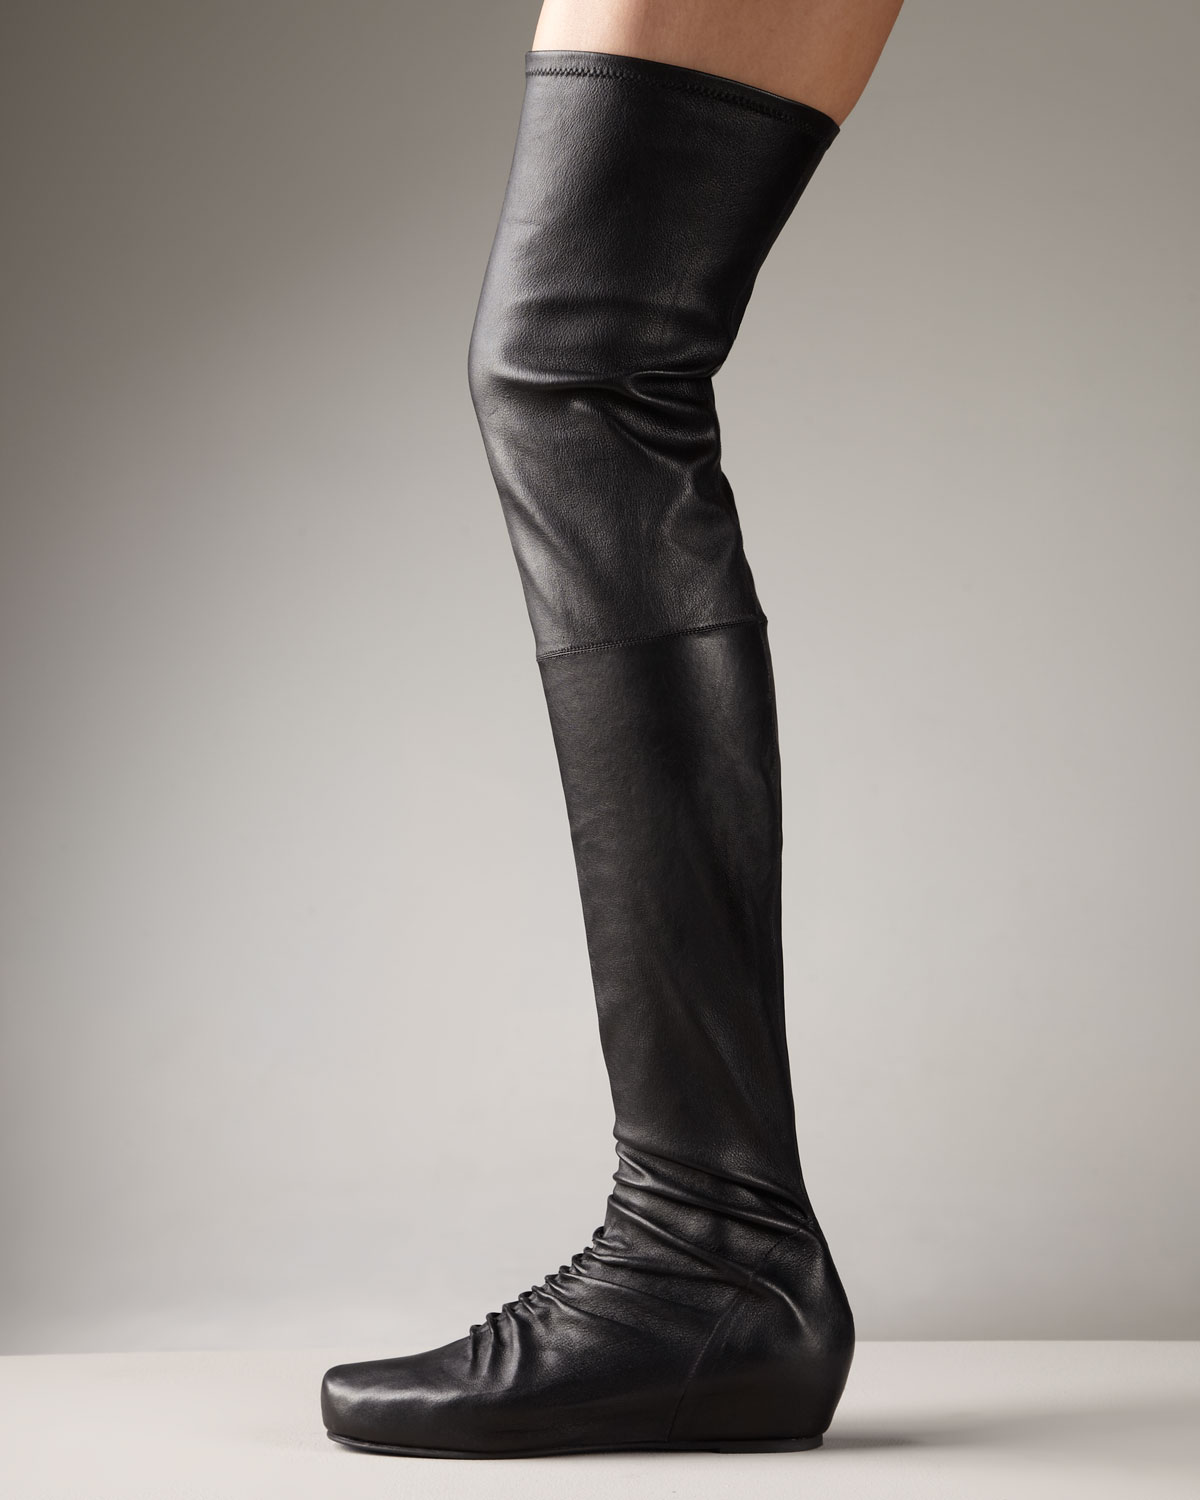 Rick owens Internal-wedge Over-the-knee Boot in Black